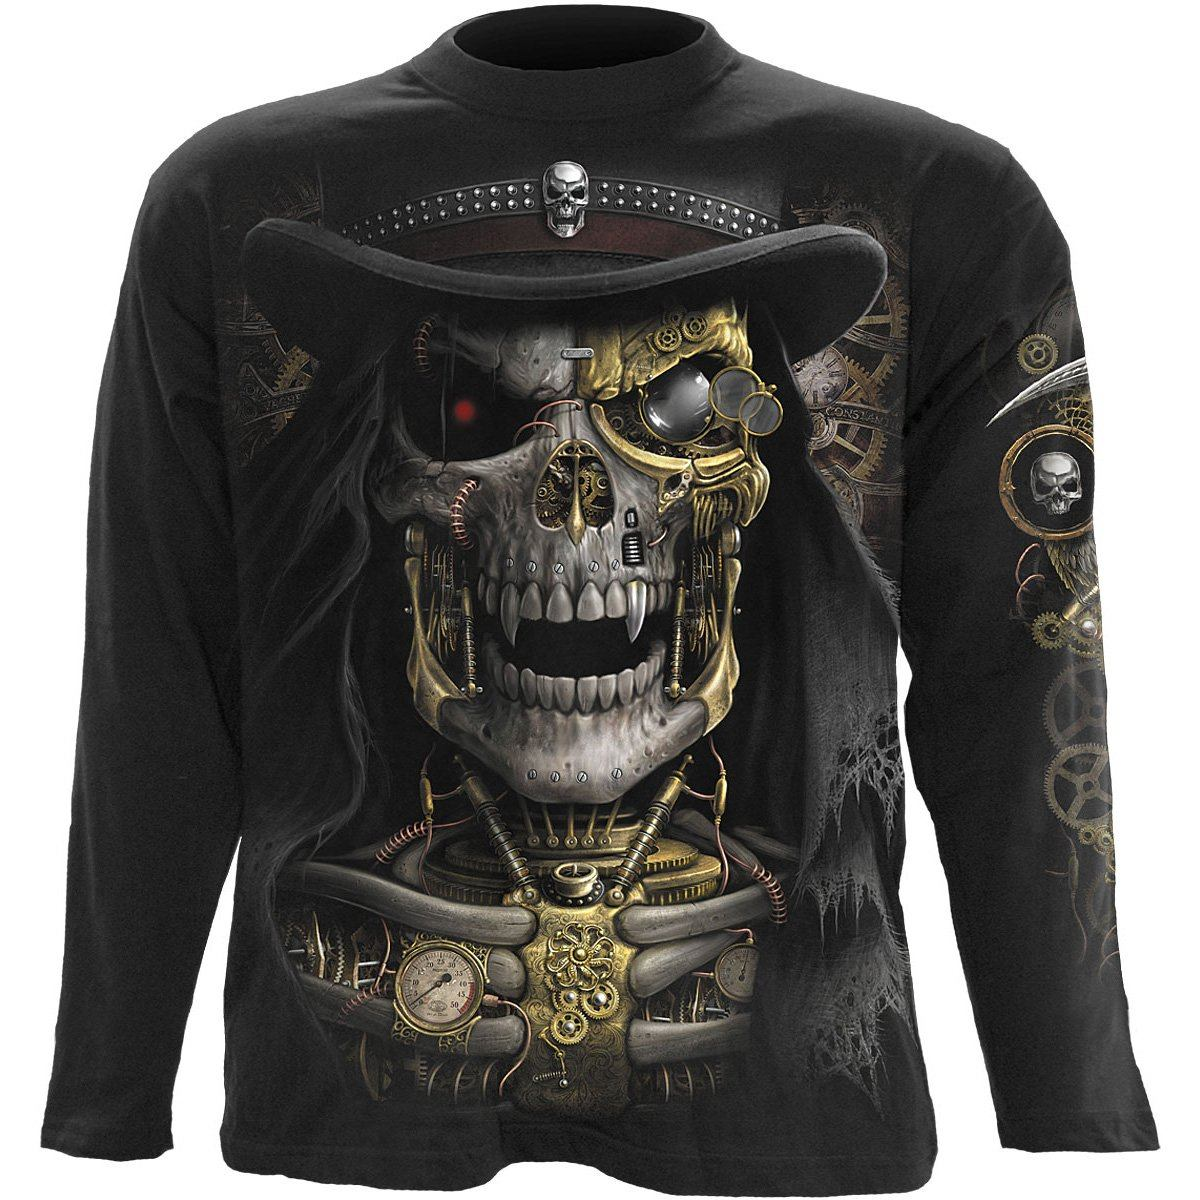 Steampunk Grim Reaper Men's Black Longsleeve Shirt